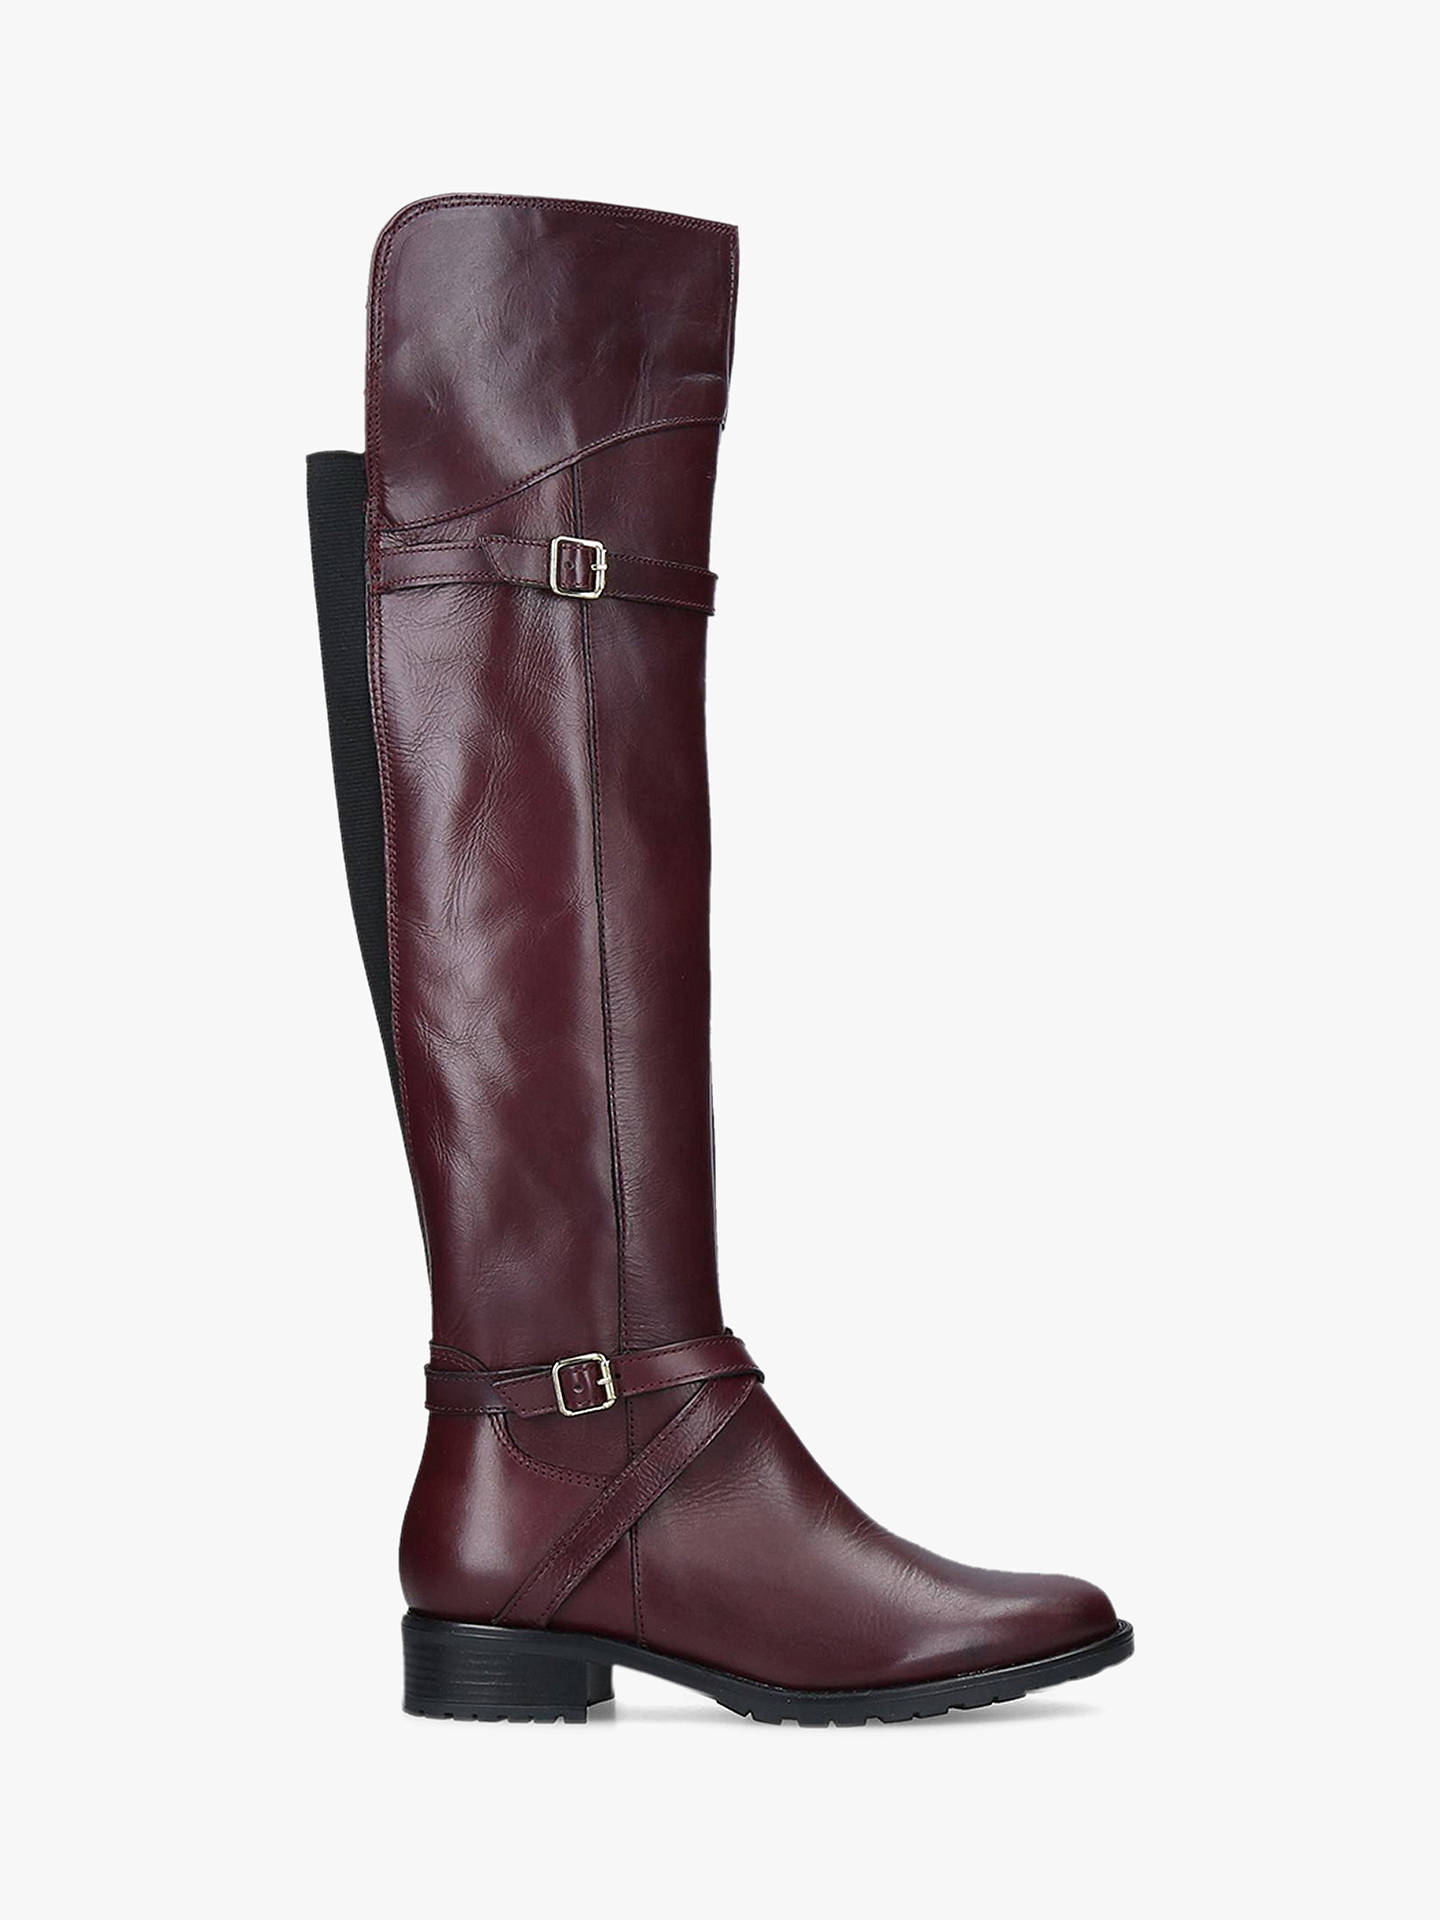 BuyCarvela Comfort Viv Knee High Boots, Red Leather, 6 Online at johnlewis.com